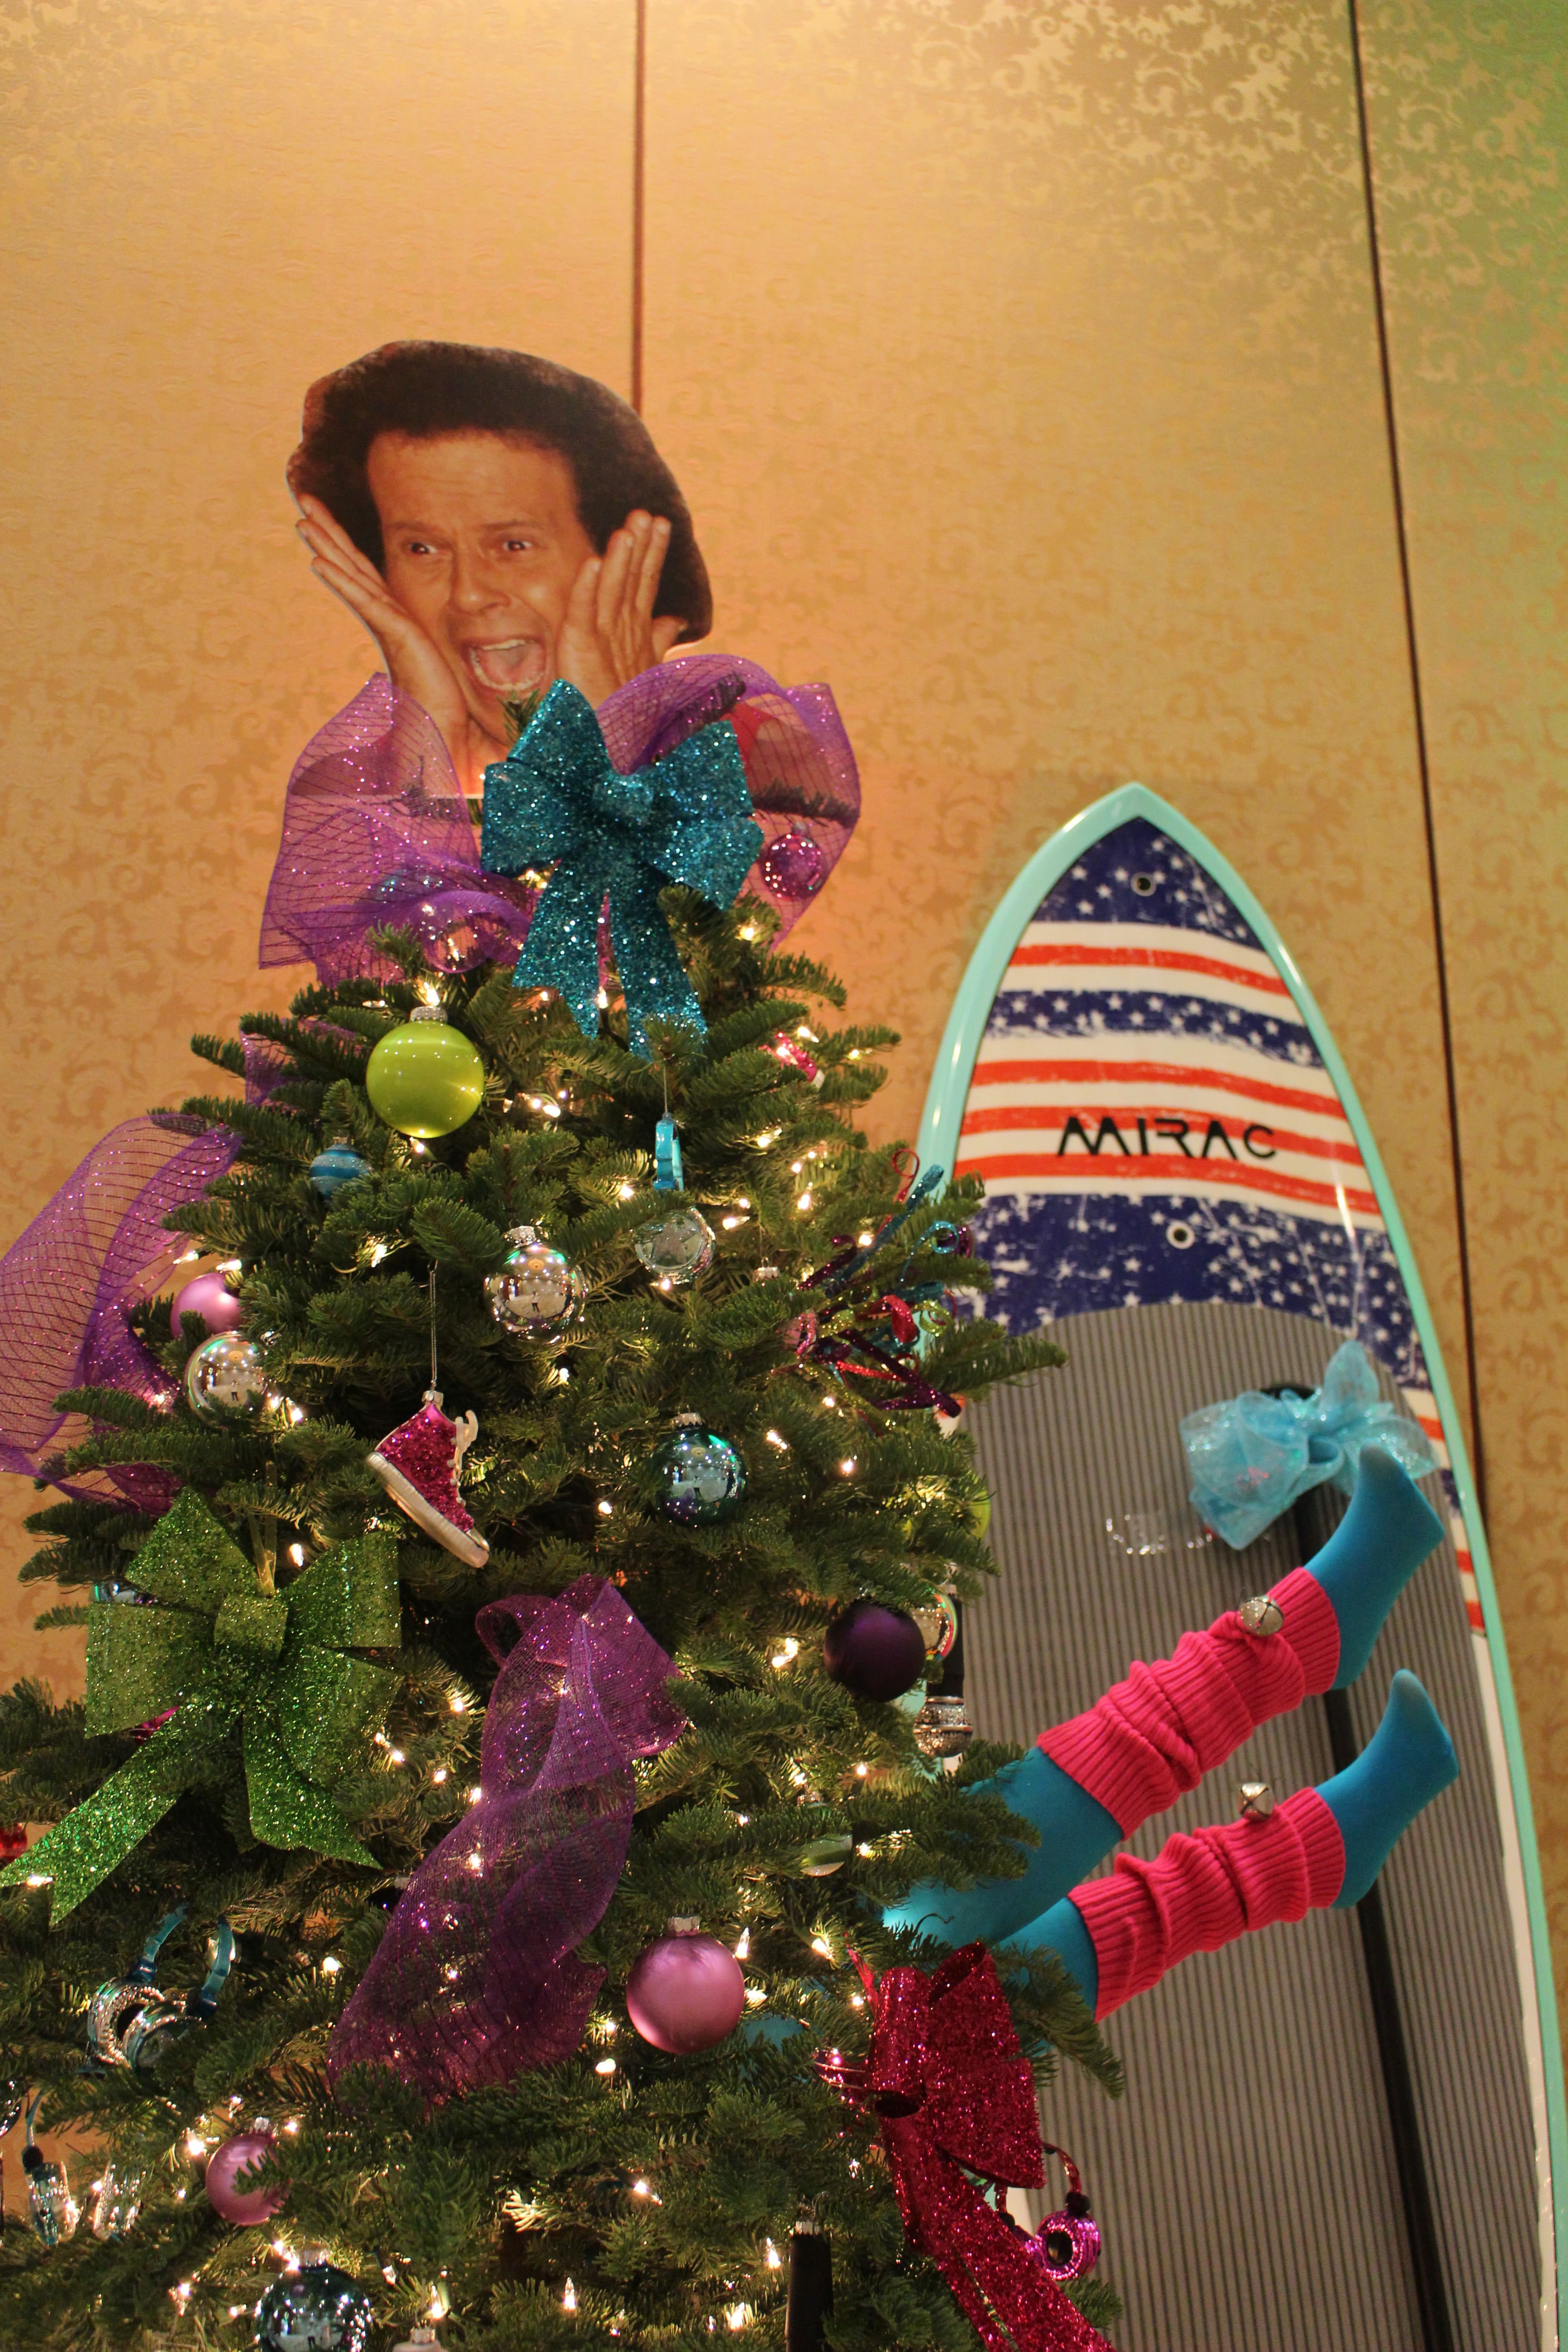 An 80s-themed Christmas tree topped with a big head cardboard next to a surfboard